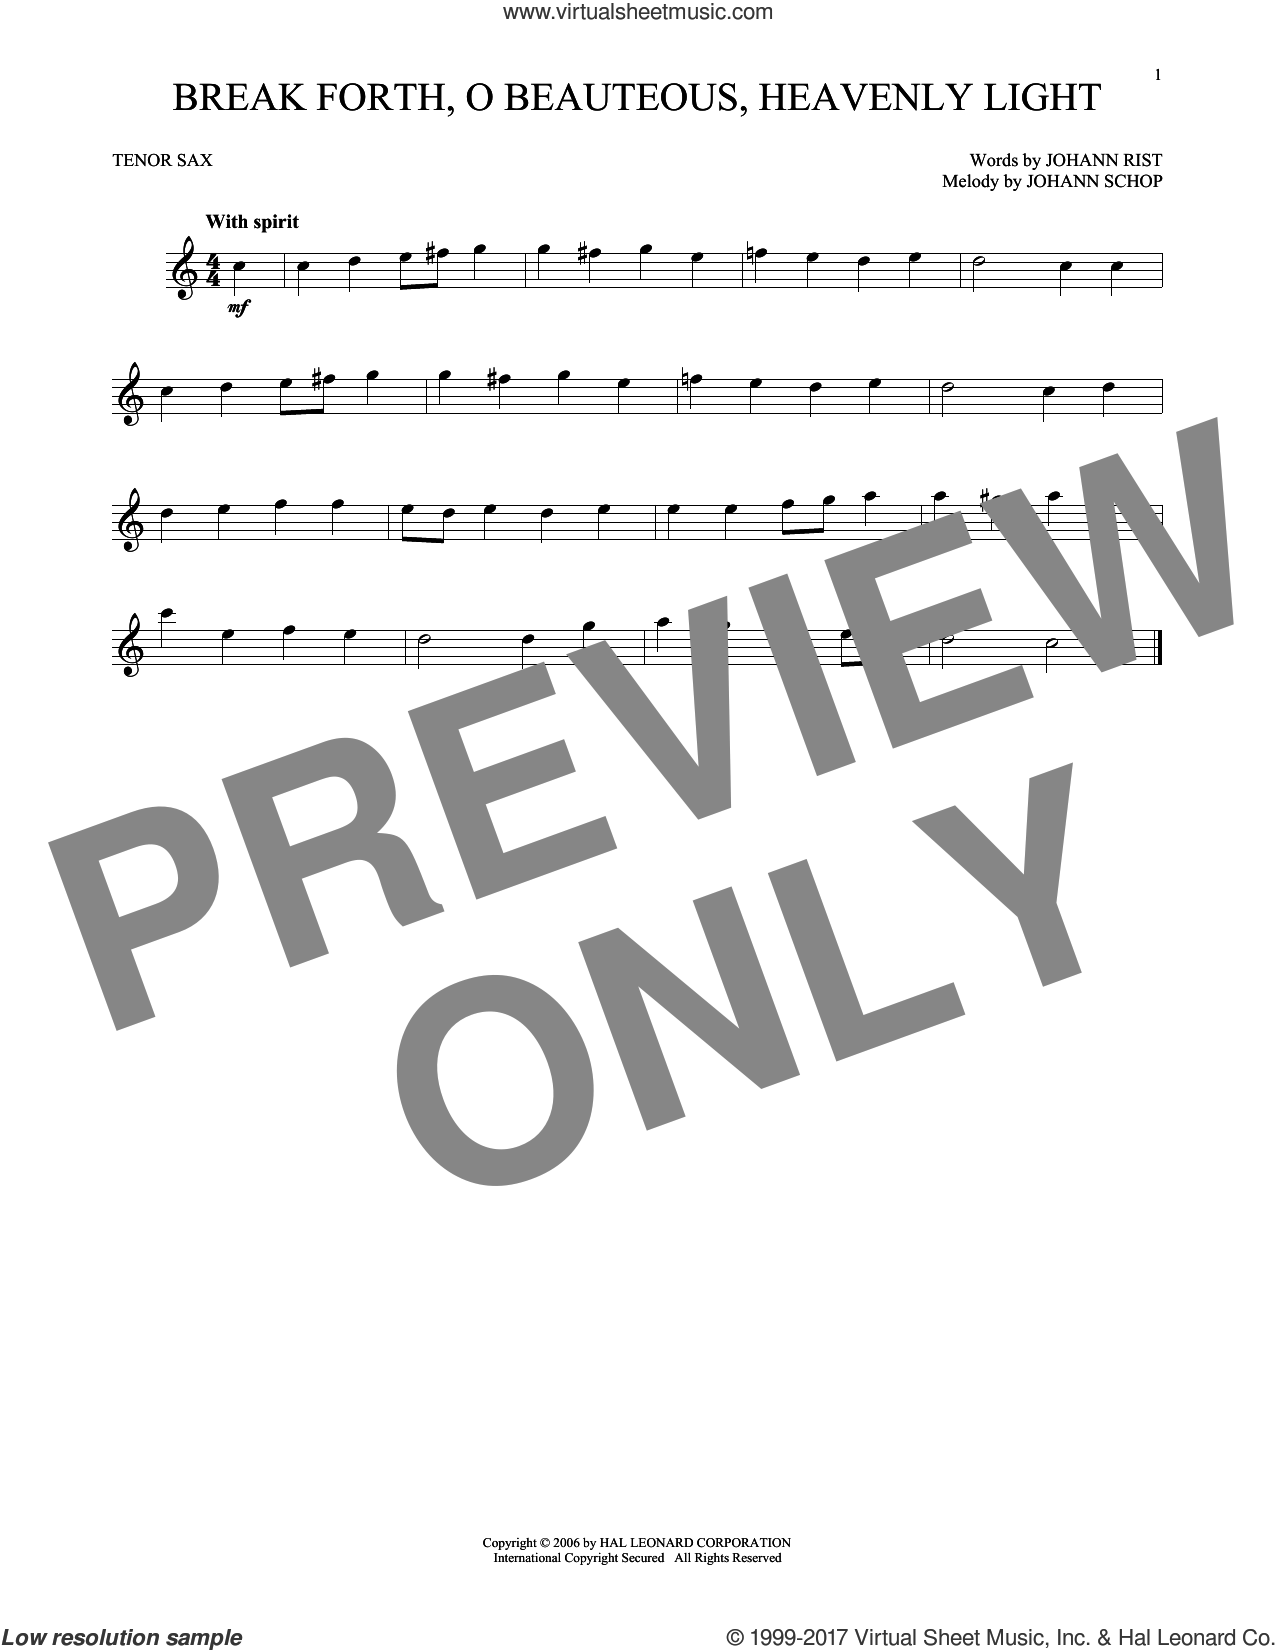 Break Forth, O Beauteous, Heavenly Light sheet music for tenor saxophone solo by Johann Sebastian Bach, Johann Rist, Johann Schop and John Troutbeck (trans.), intermediate skill level